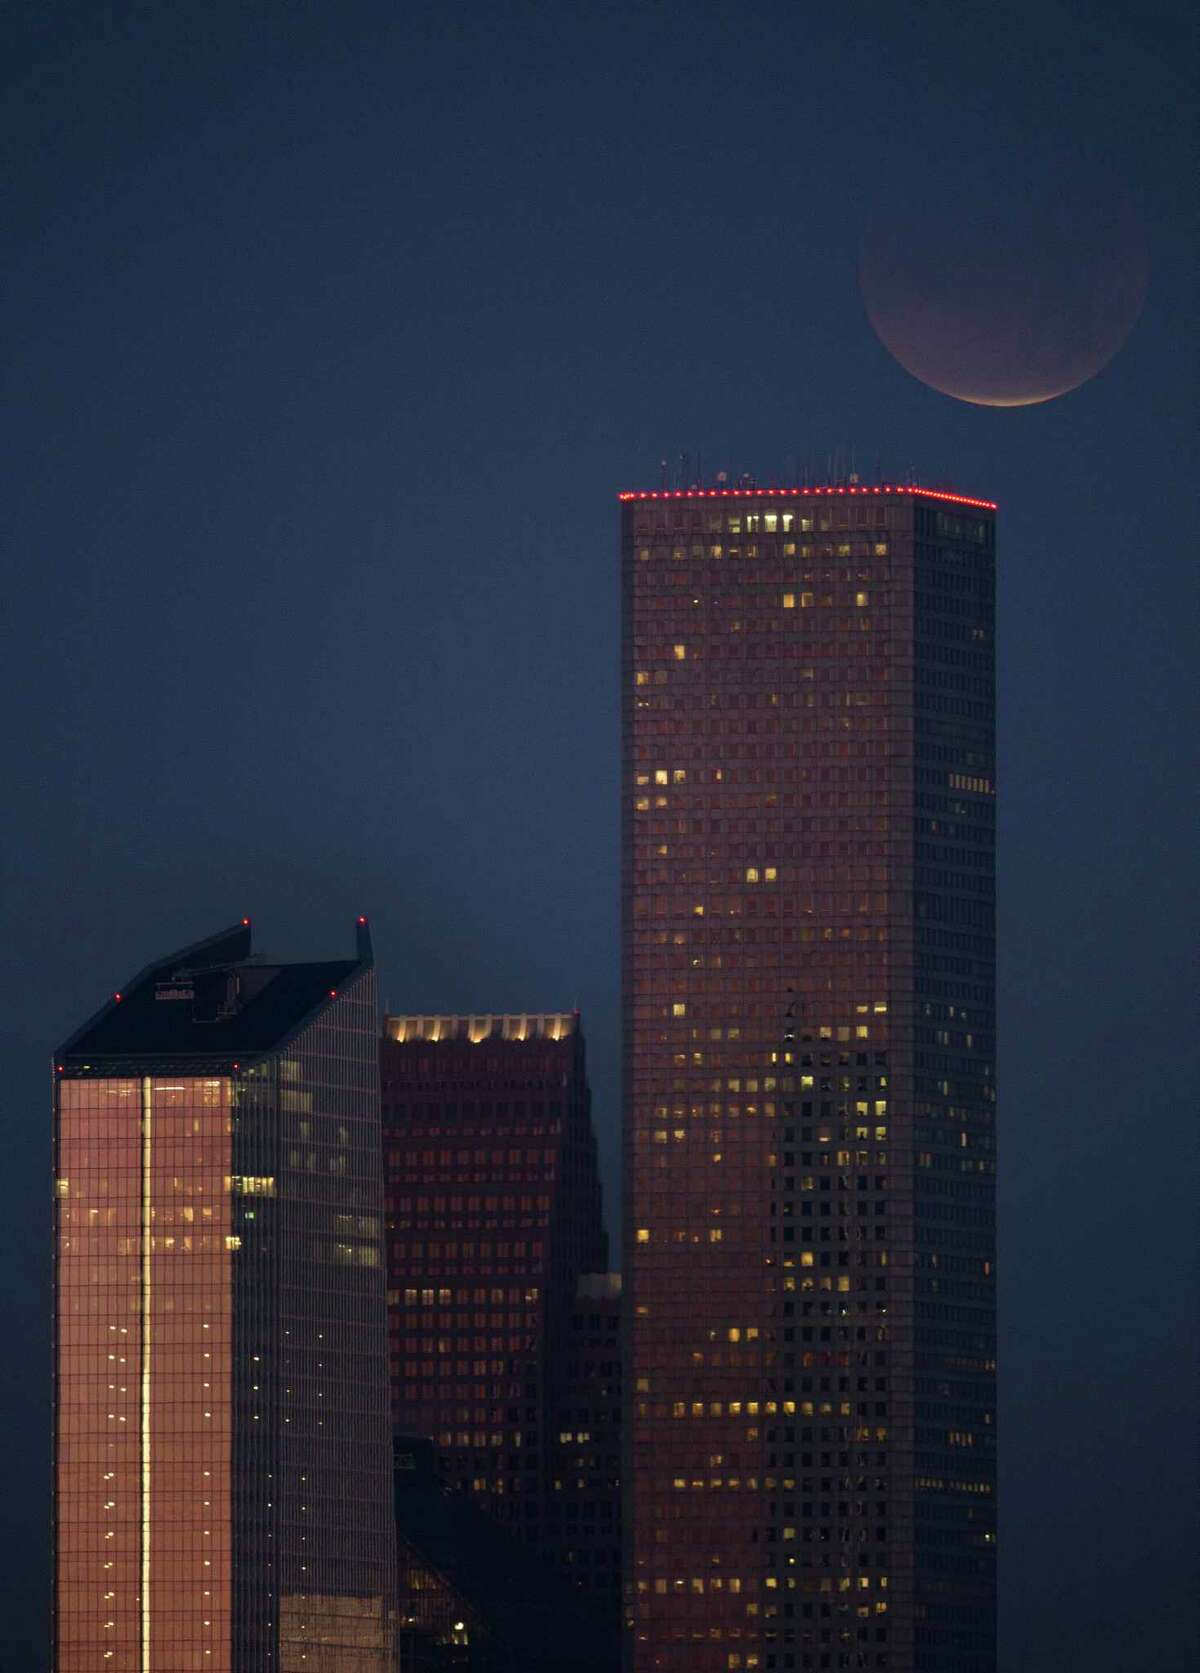 The super blood moon, near full eclipse, seen above downtown Houston Wednesday, Jan. 31, 2018.